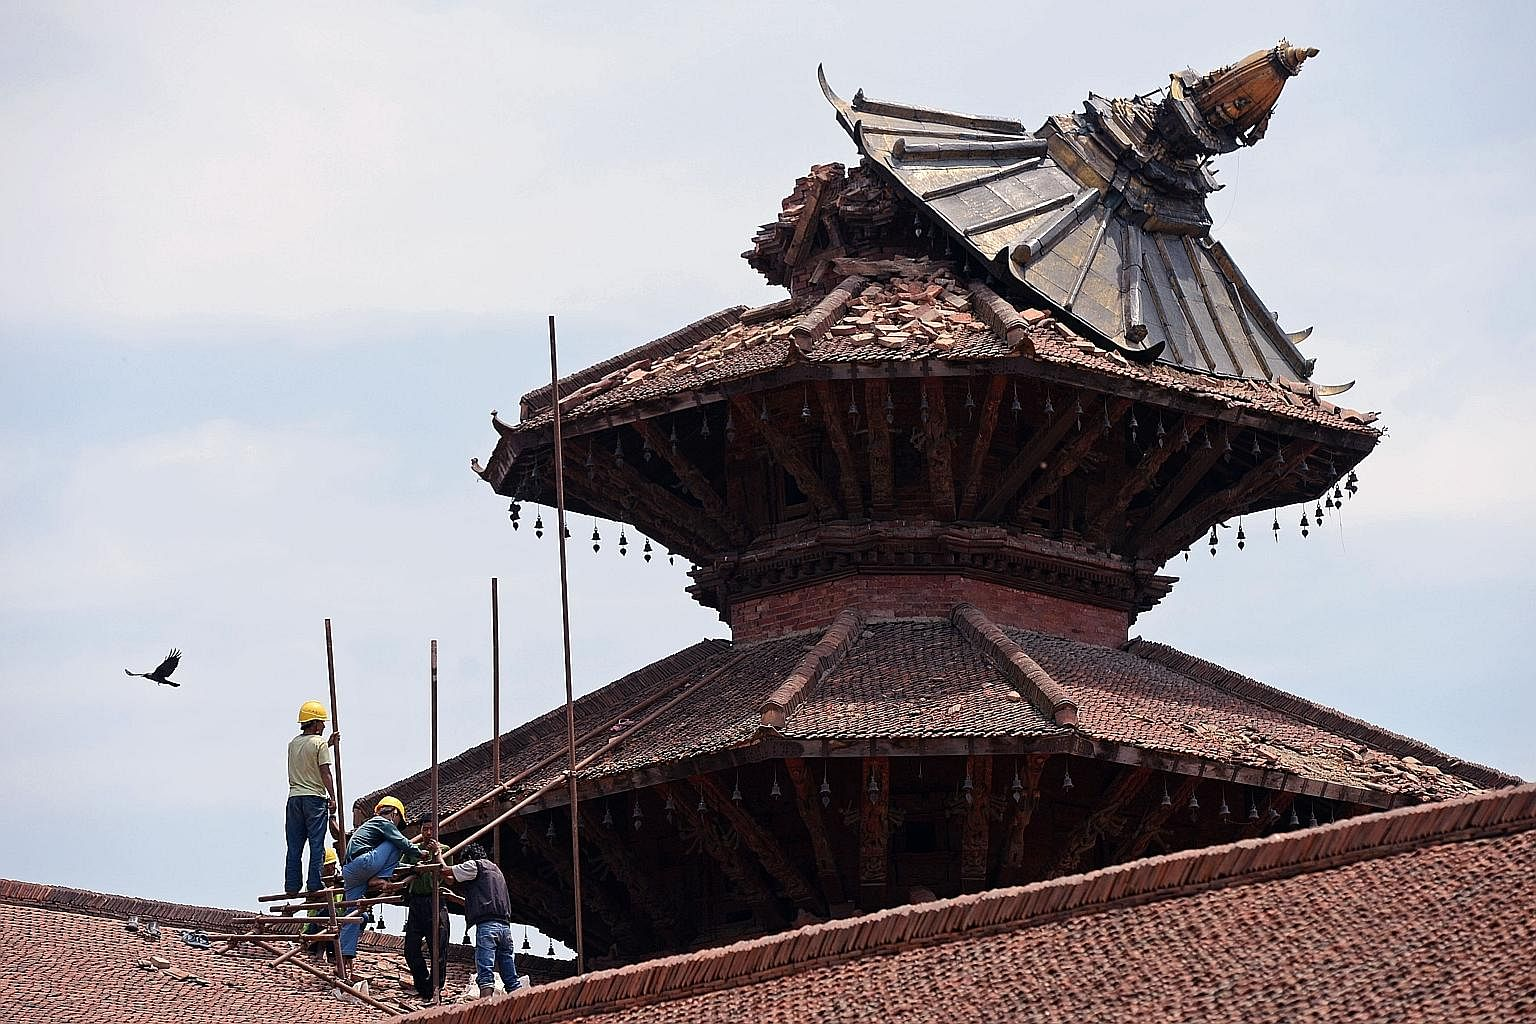 Workers reinforcing the roof of a temple in historical Durbar Square, in Nepal, which had collapsed, following an earthquake in April.